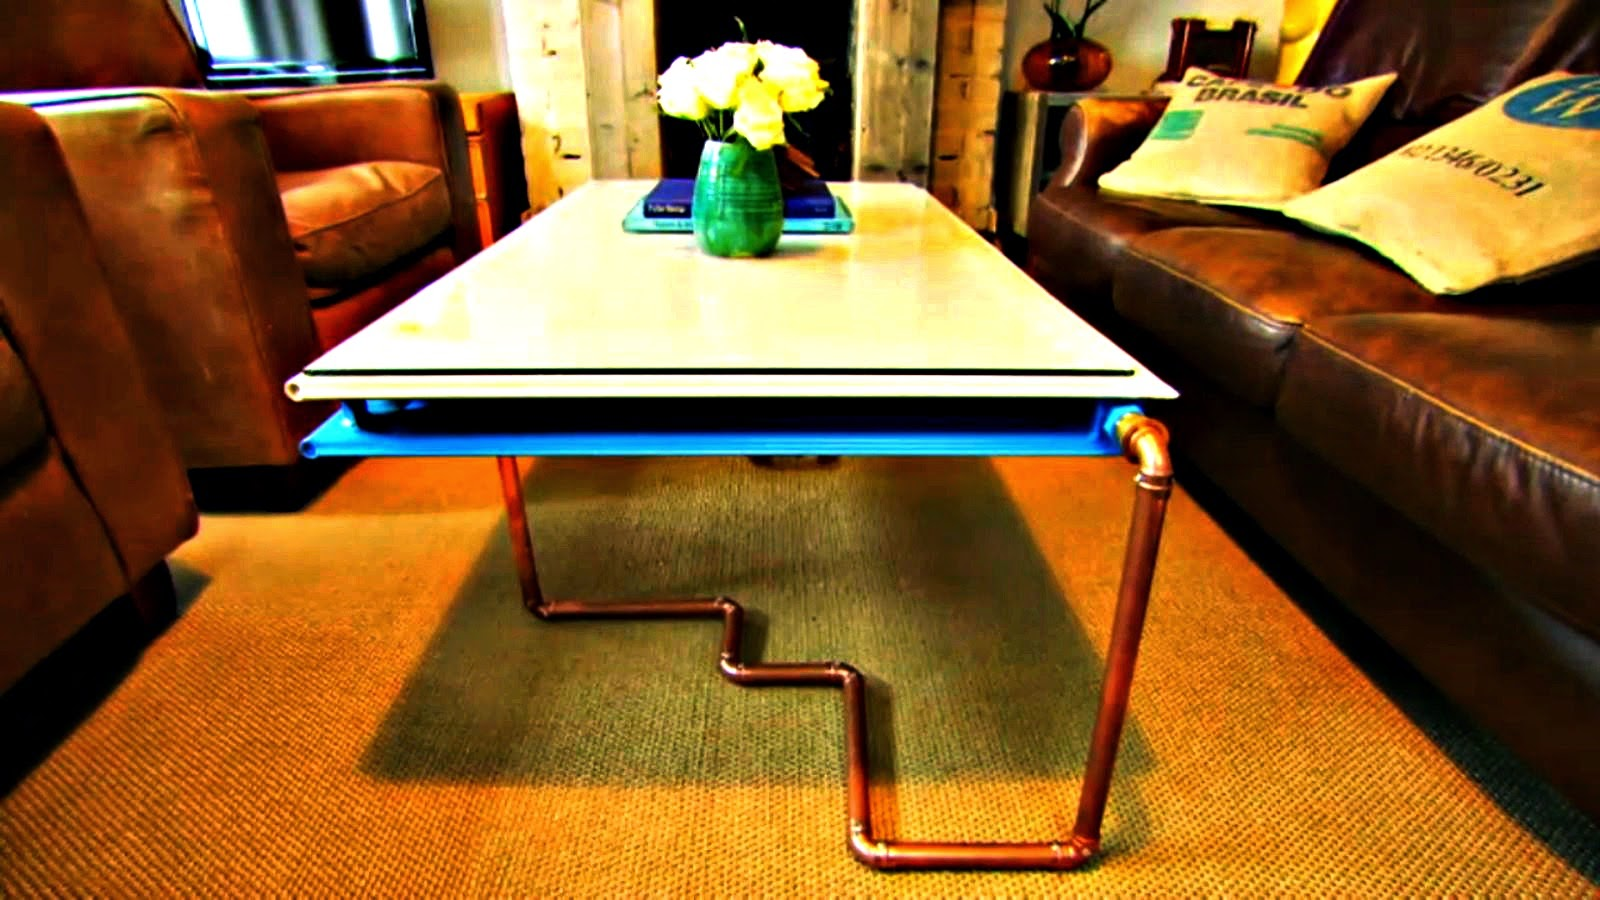 Fill Your House For Free Heater as Coffee Table DIY